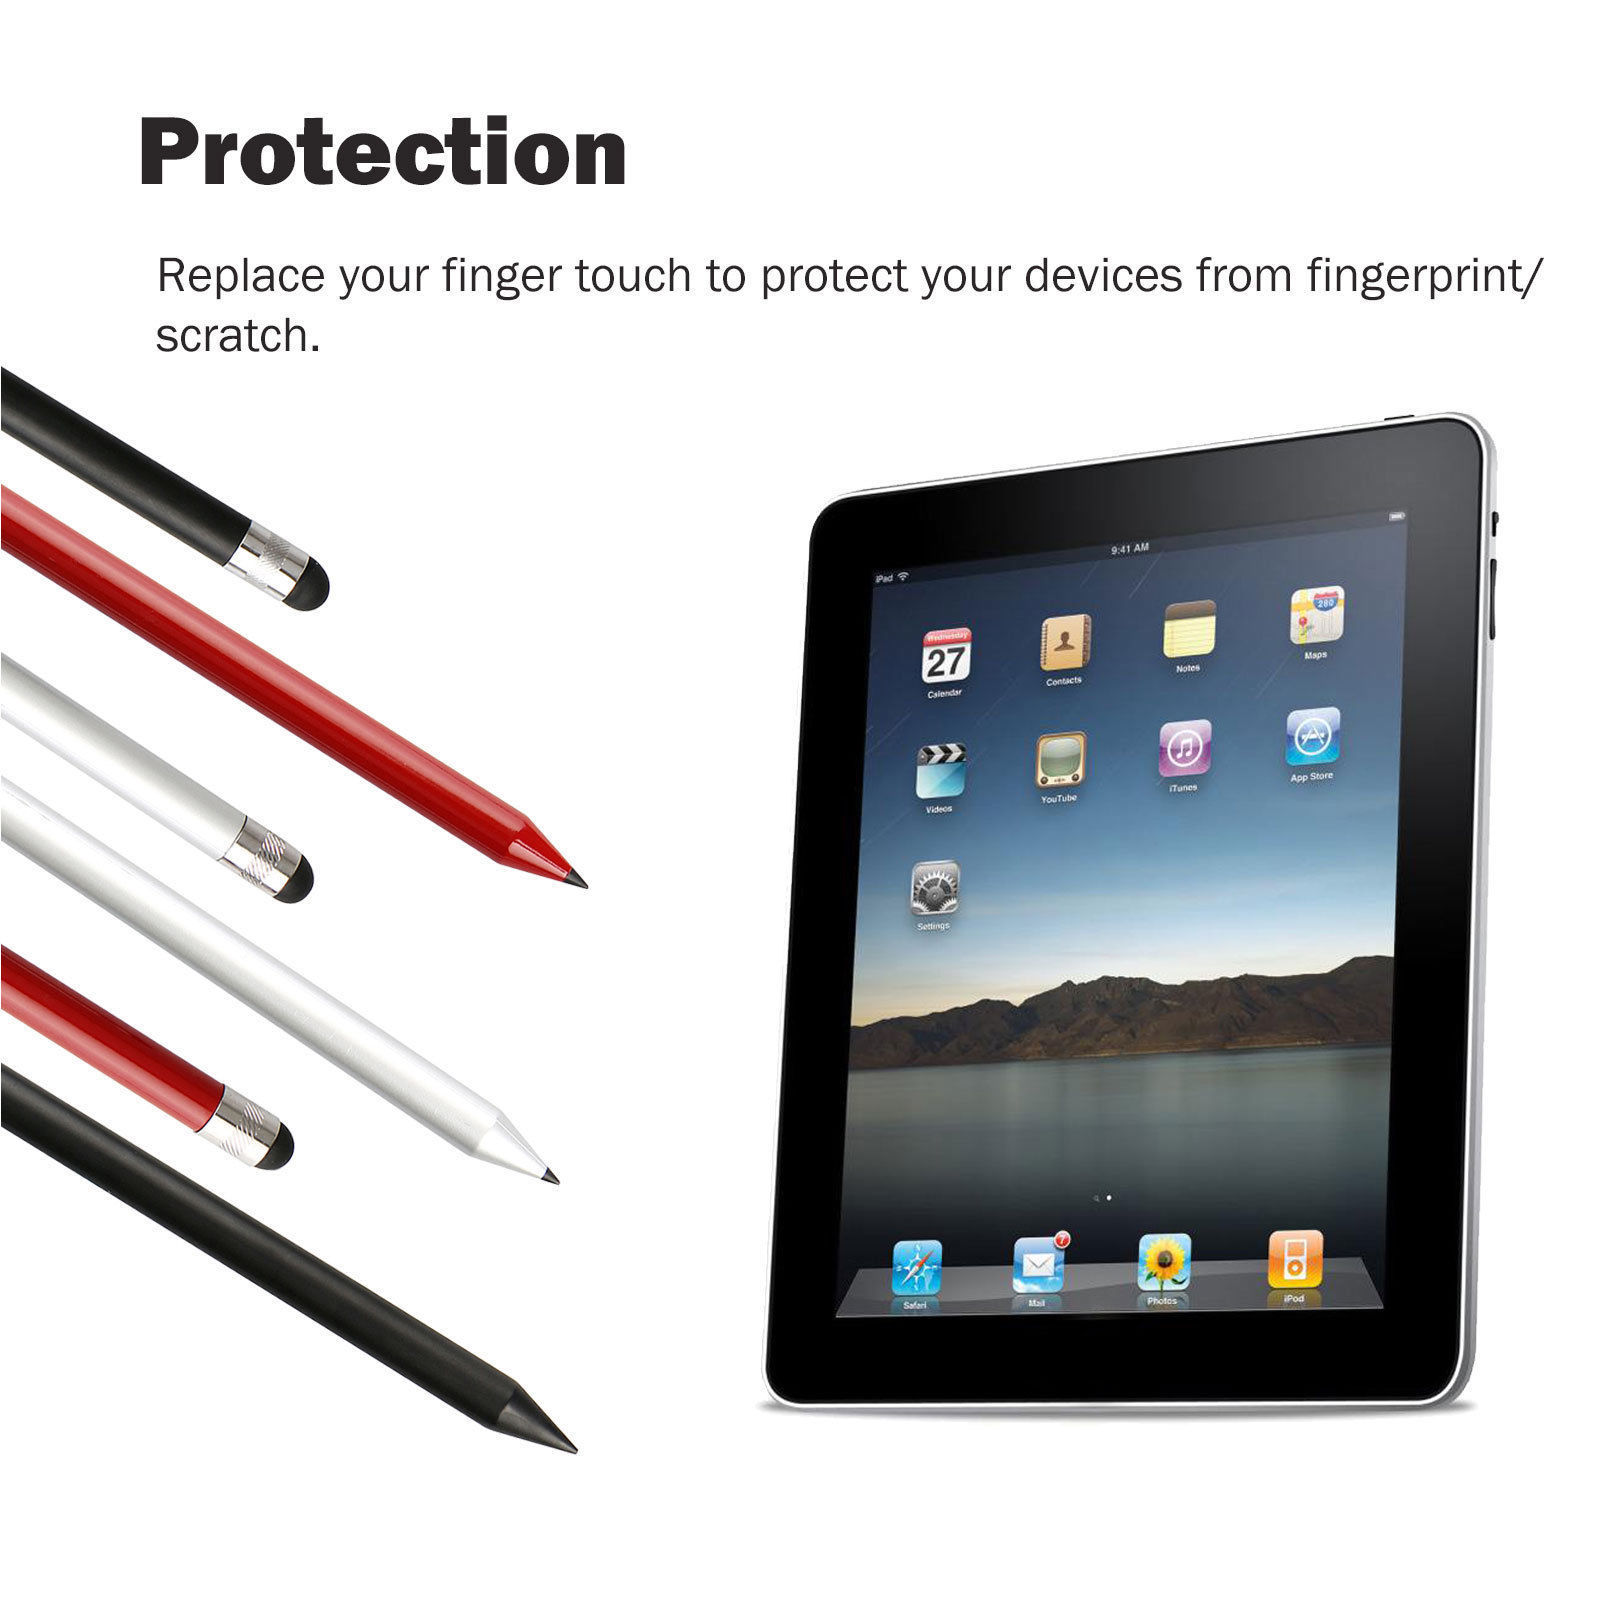 Capacitive-Pen-Touch-Screen-Stylus-Pencil-for-Tablet-iPad-Cell-Phone-Samsung-PC thumbnail 9